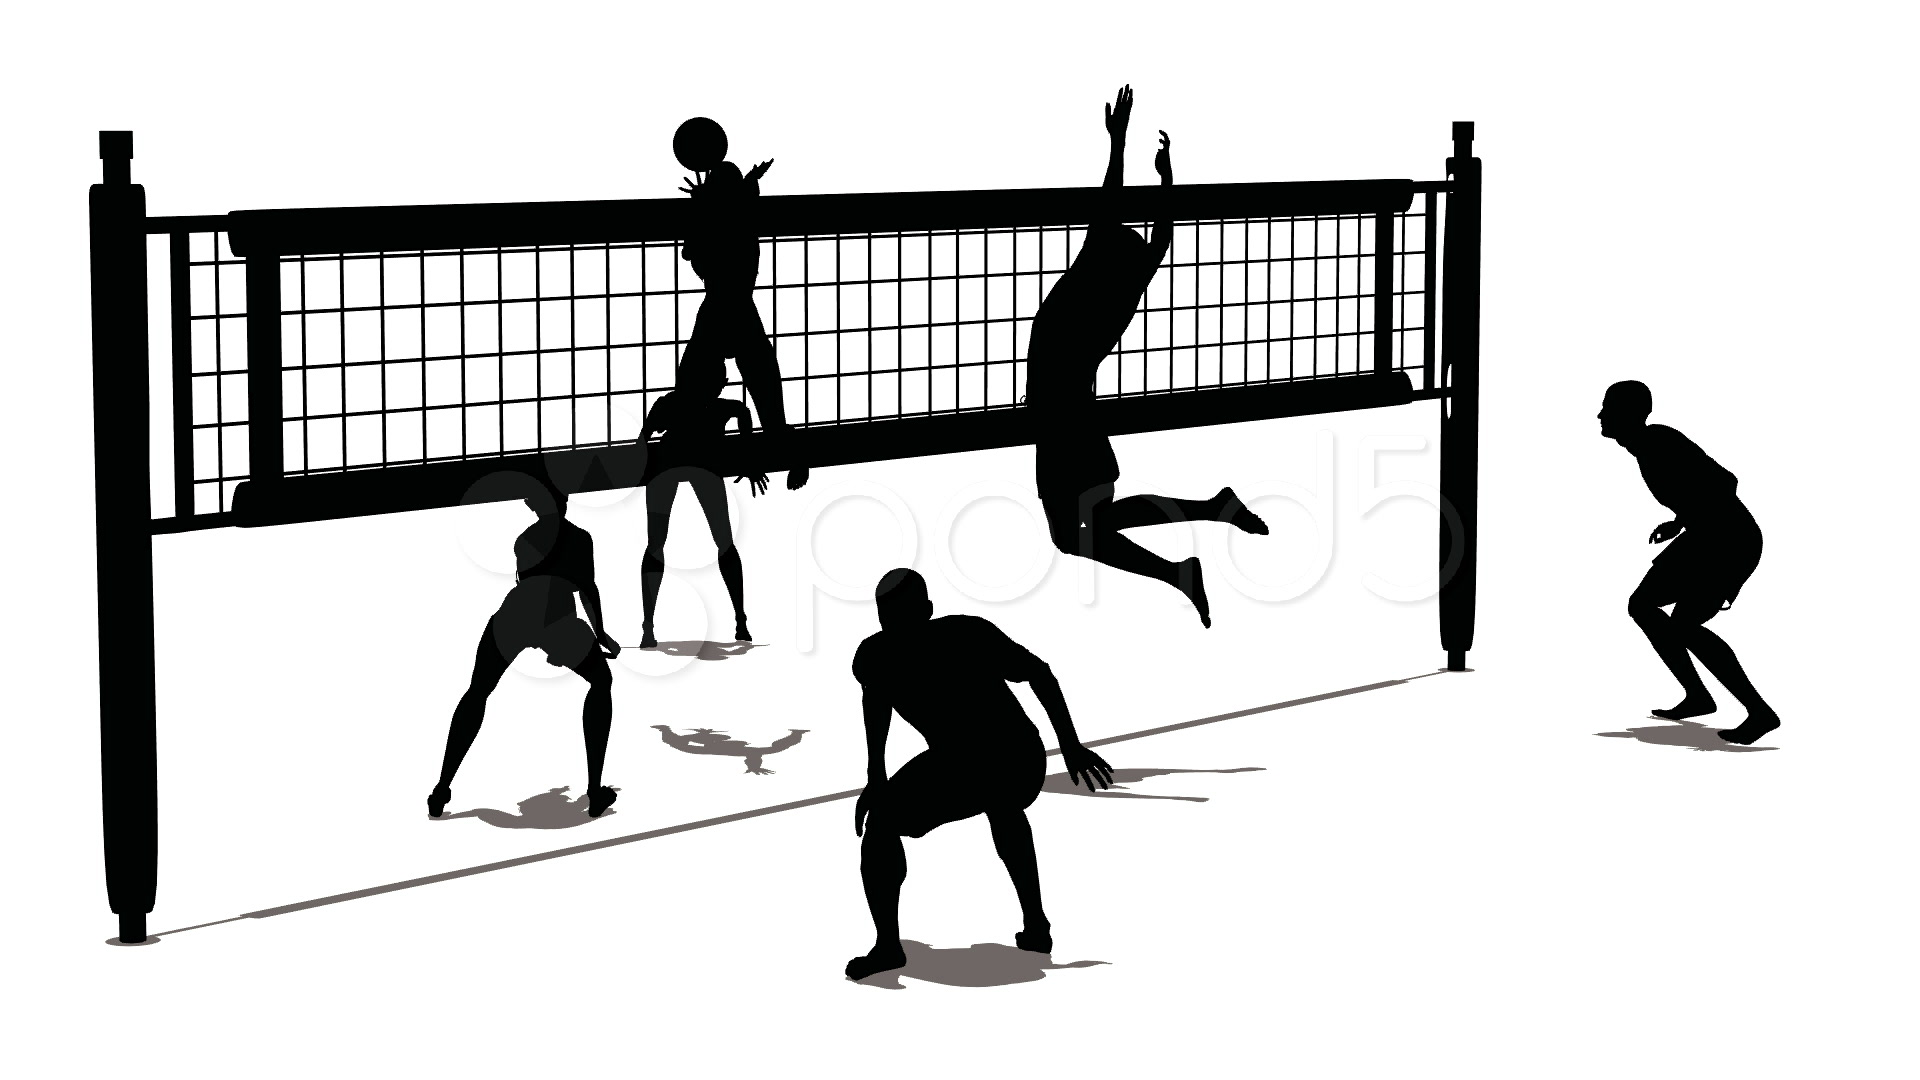 Beach clip art library. Volleyball clipart volleyball game